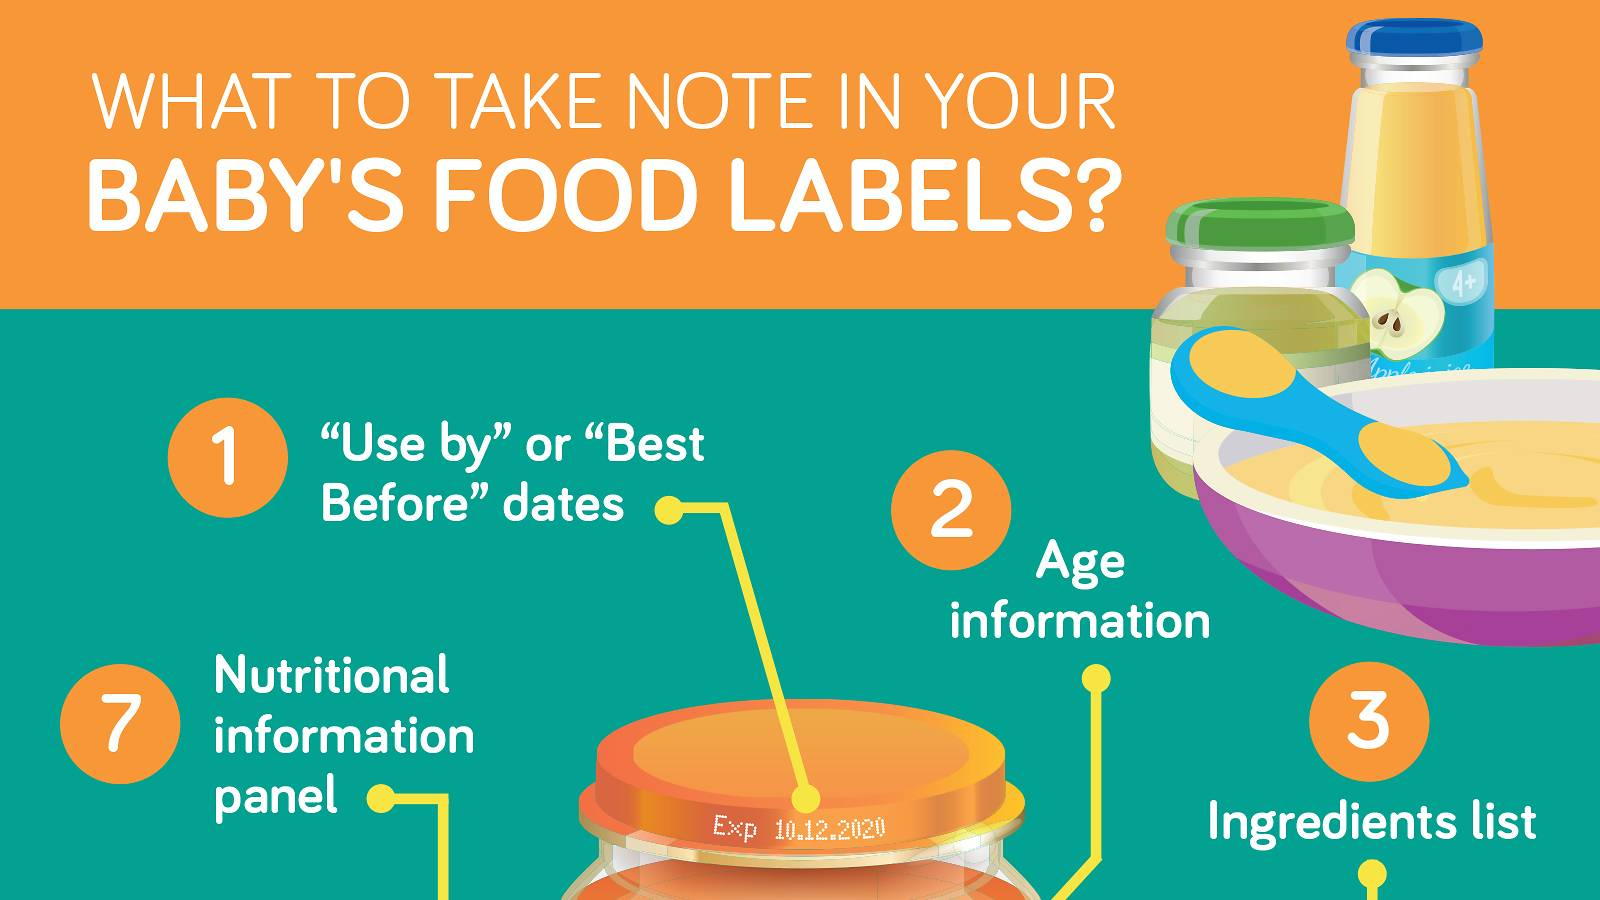 Babies-How-to-make-sense-of-your-baby's-food-labels-[Infographic]_01